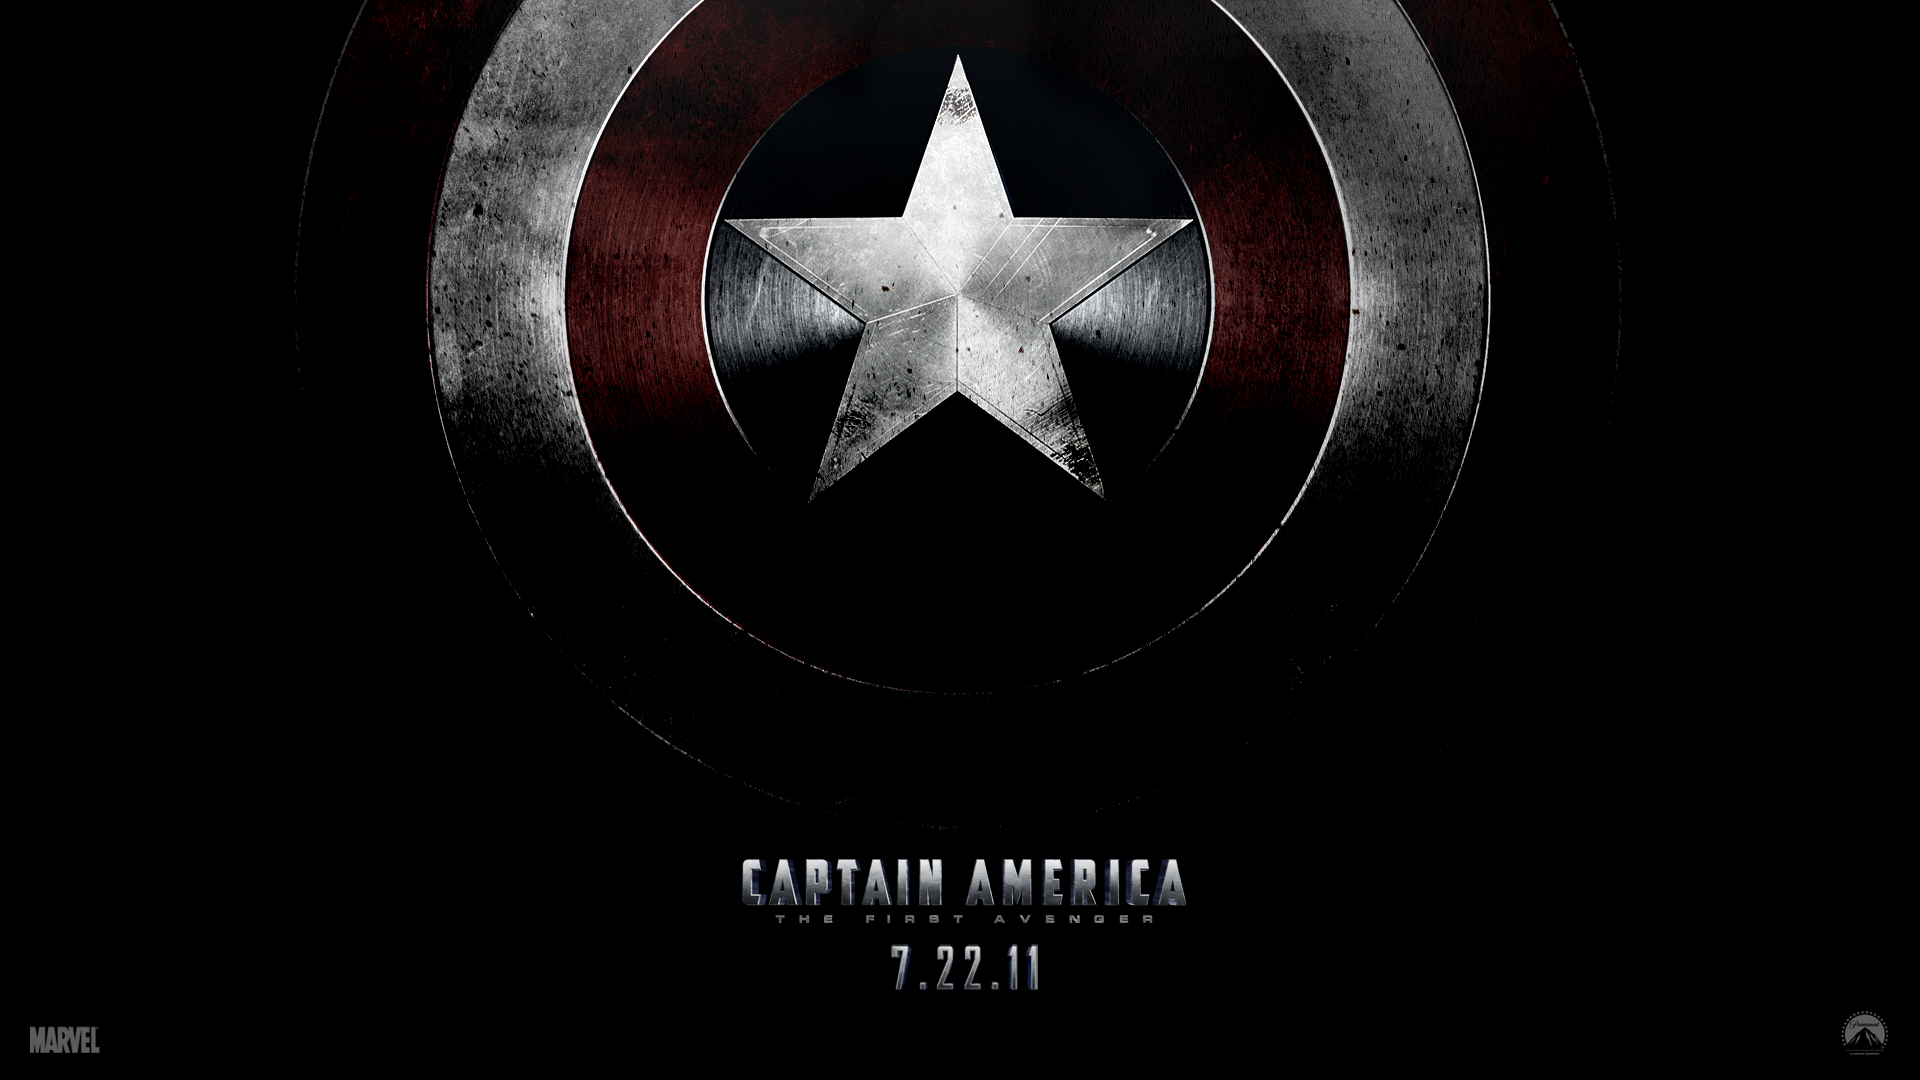 Captain America The First Avenger Wallpaper 1920 1080